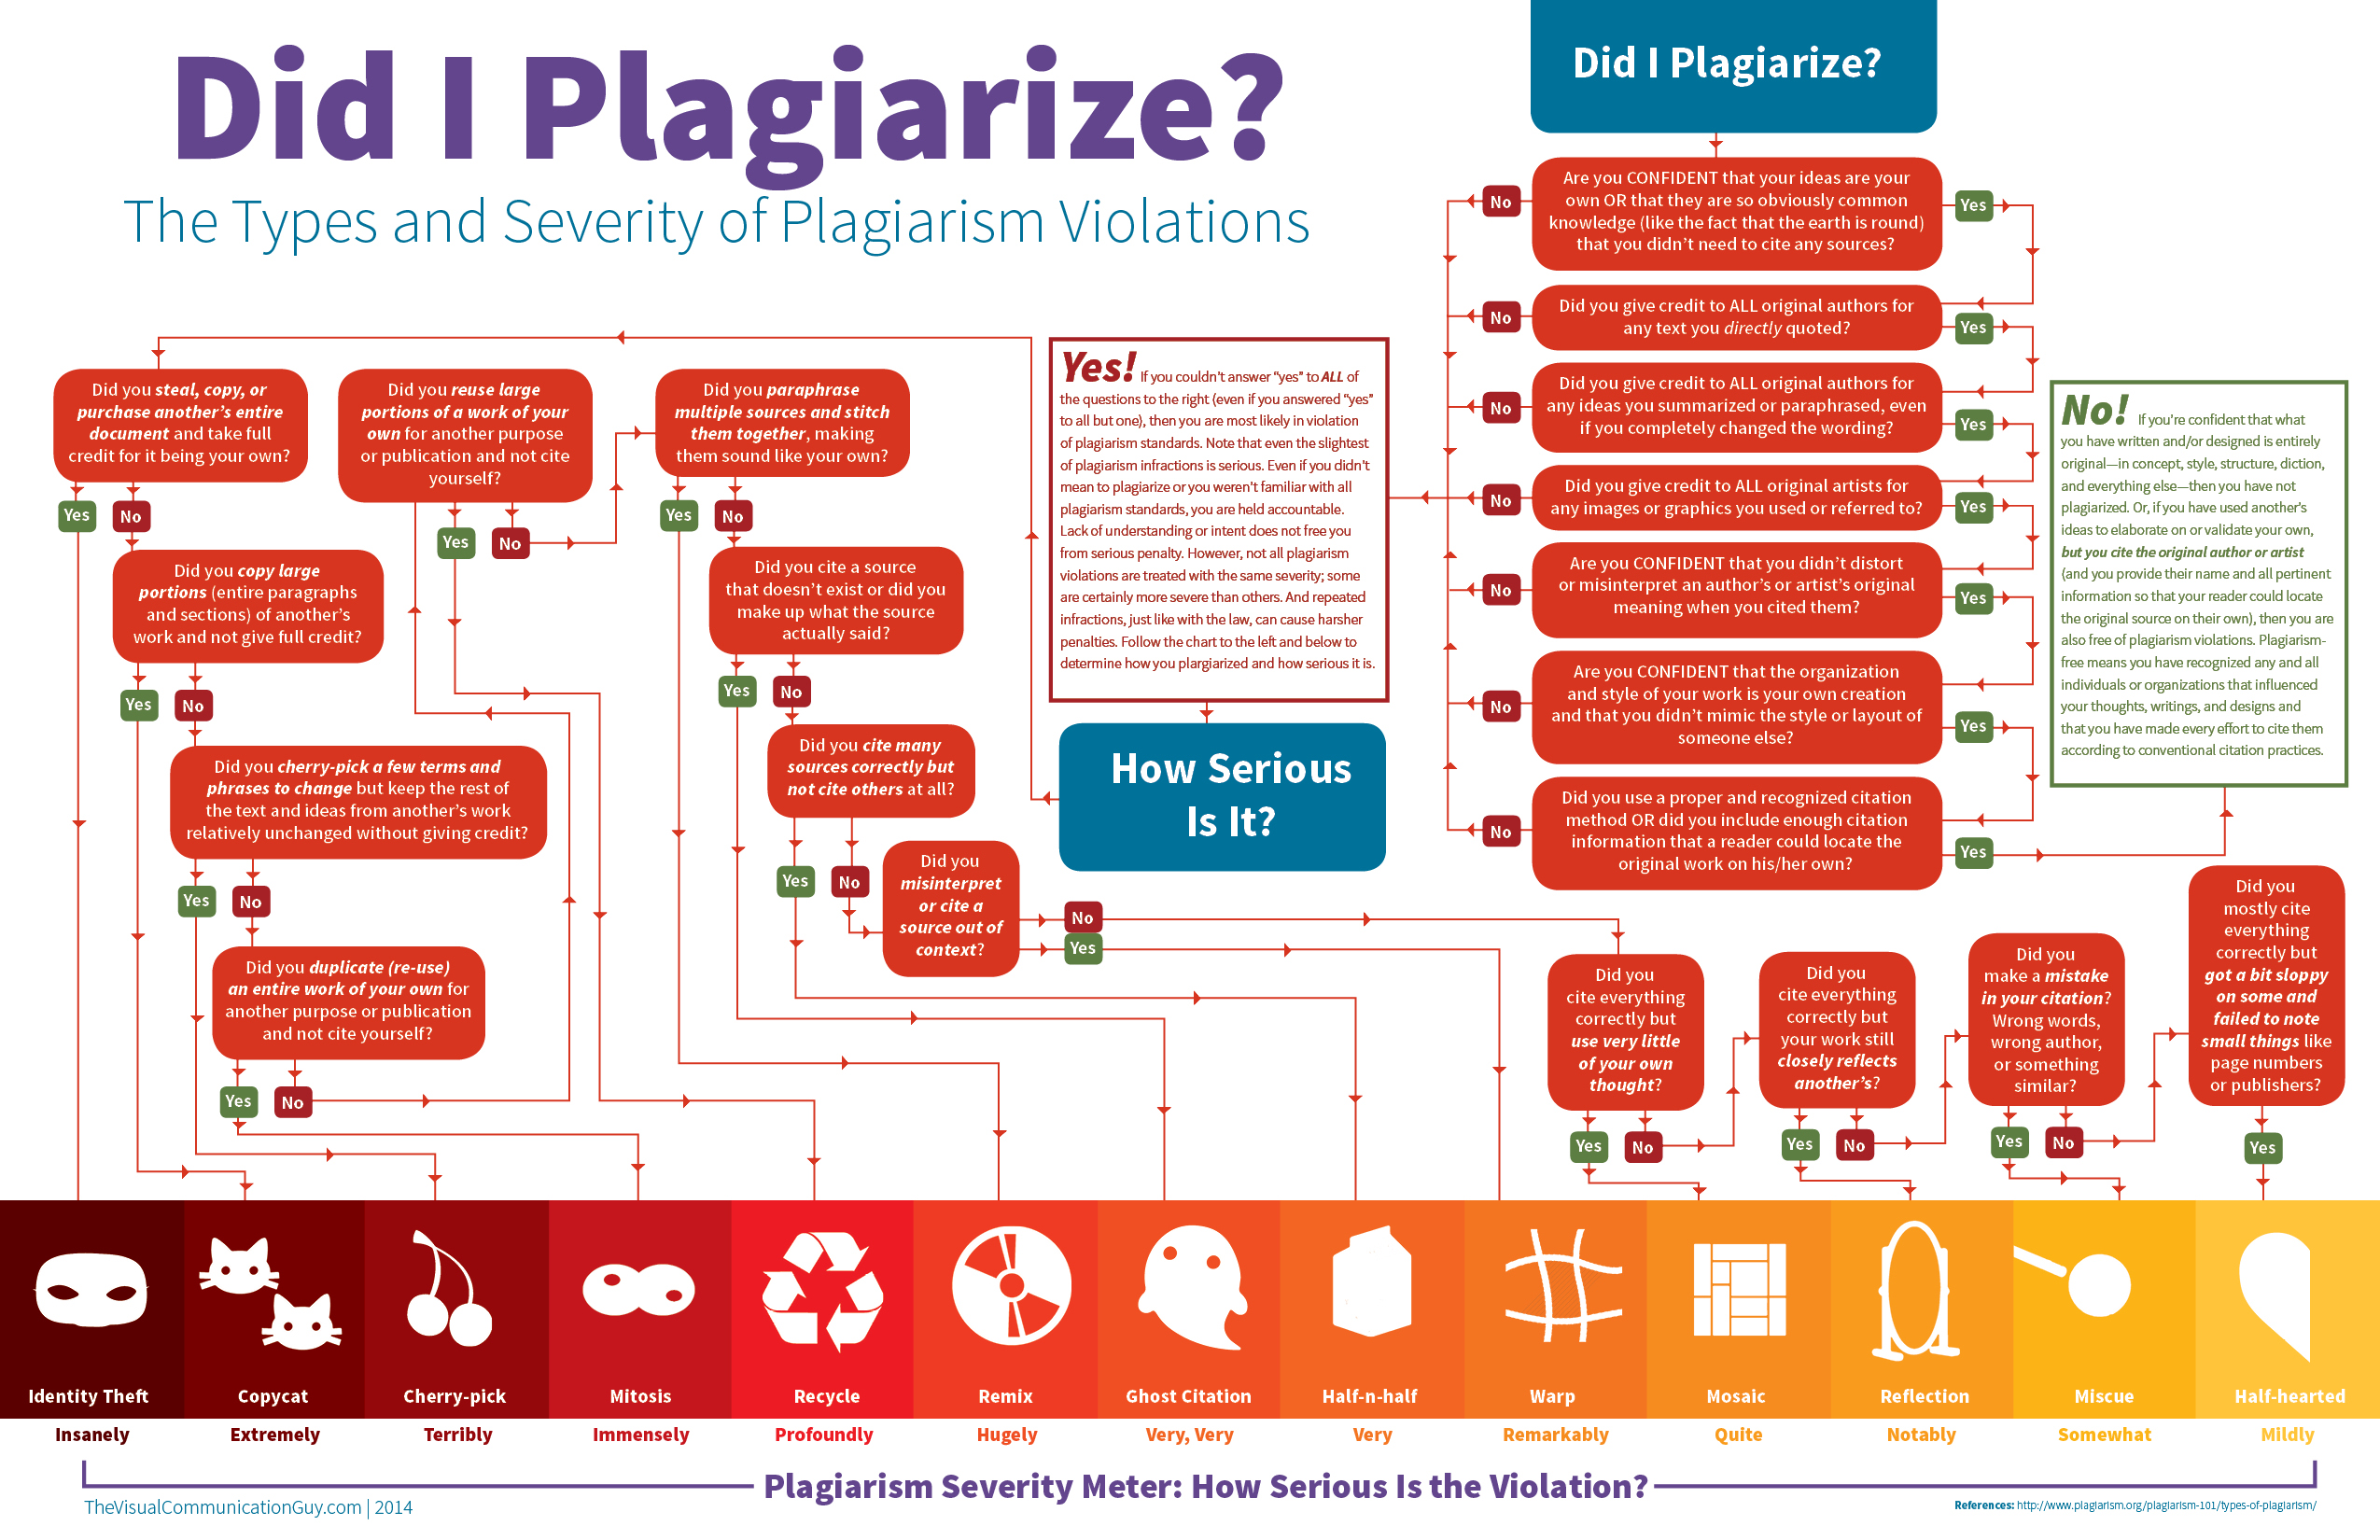 Infographic depicting types and severity of plagiarism